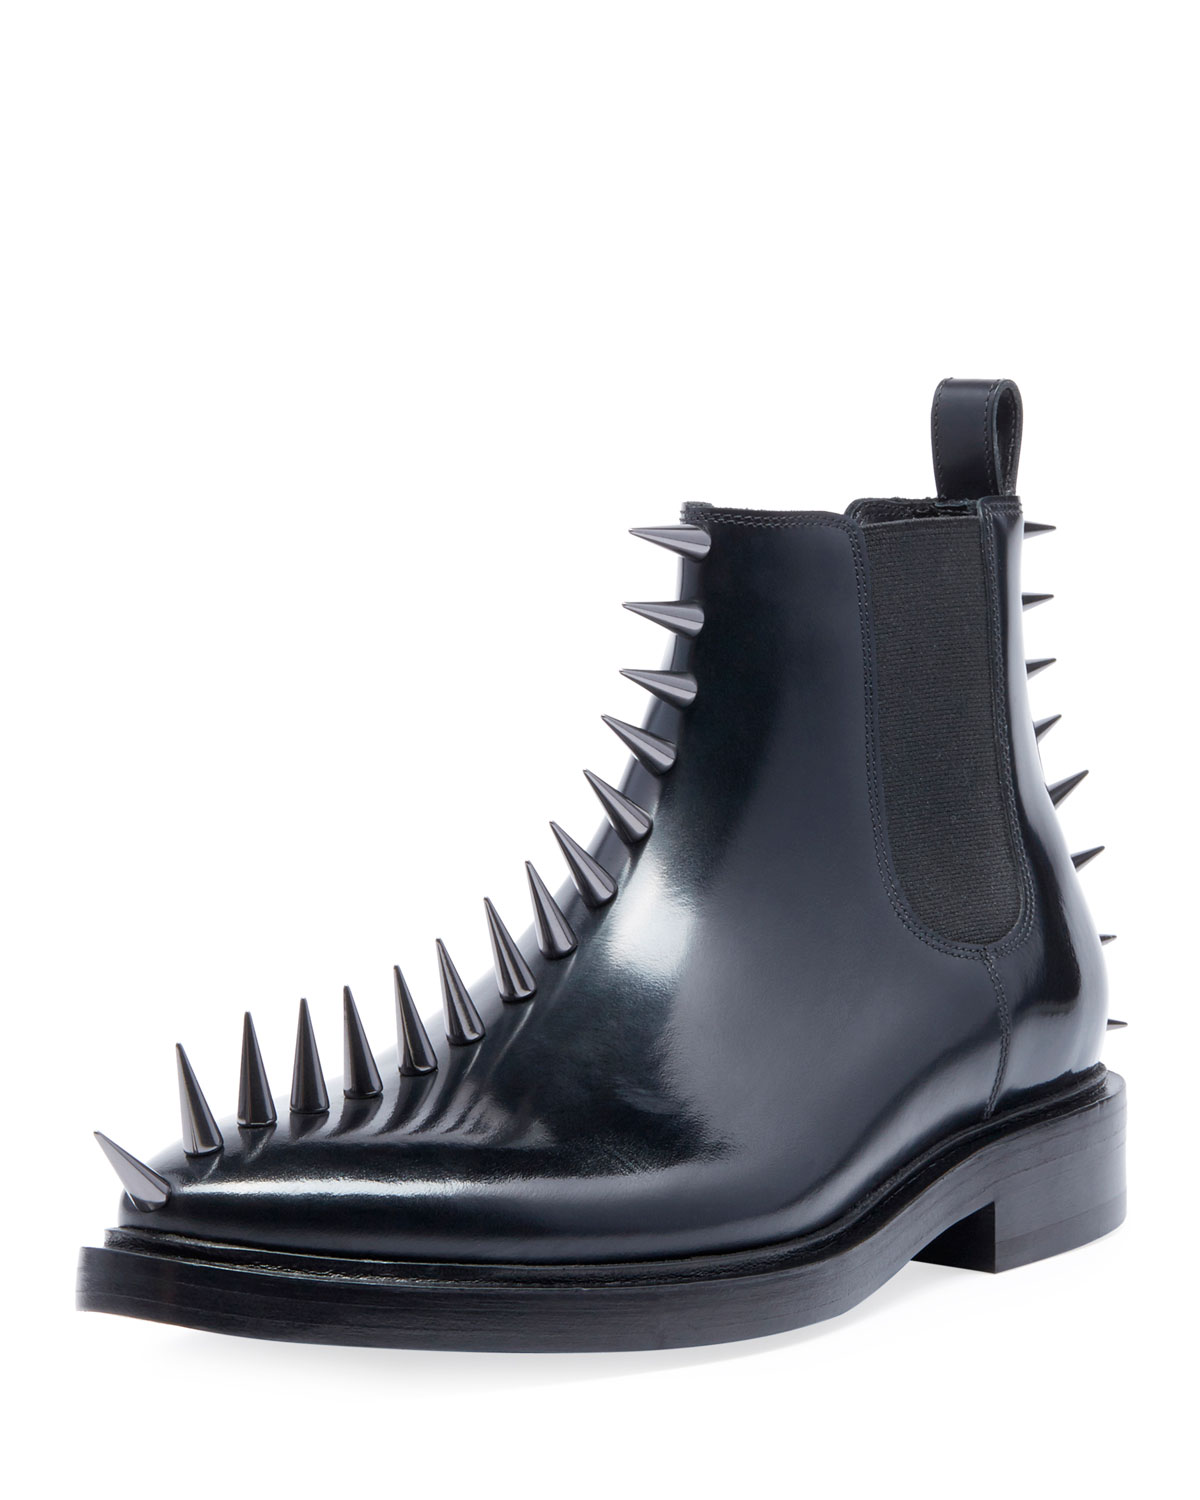 Men's Spikes Leather Combat Boots